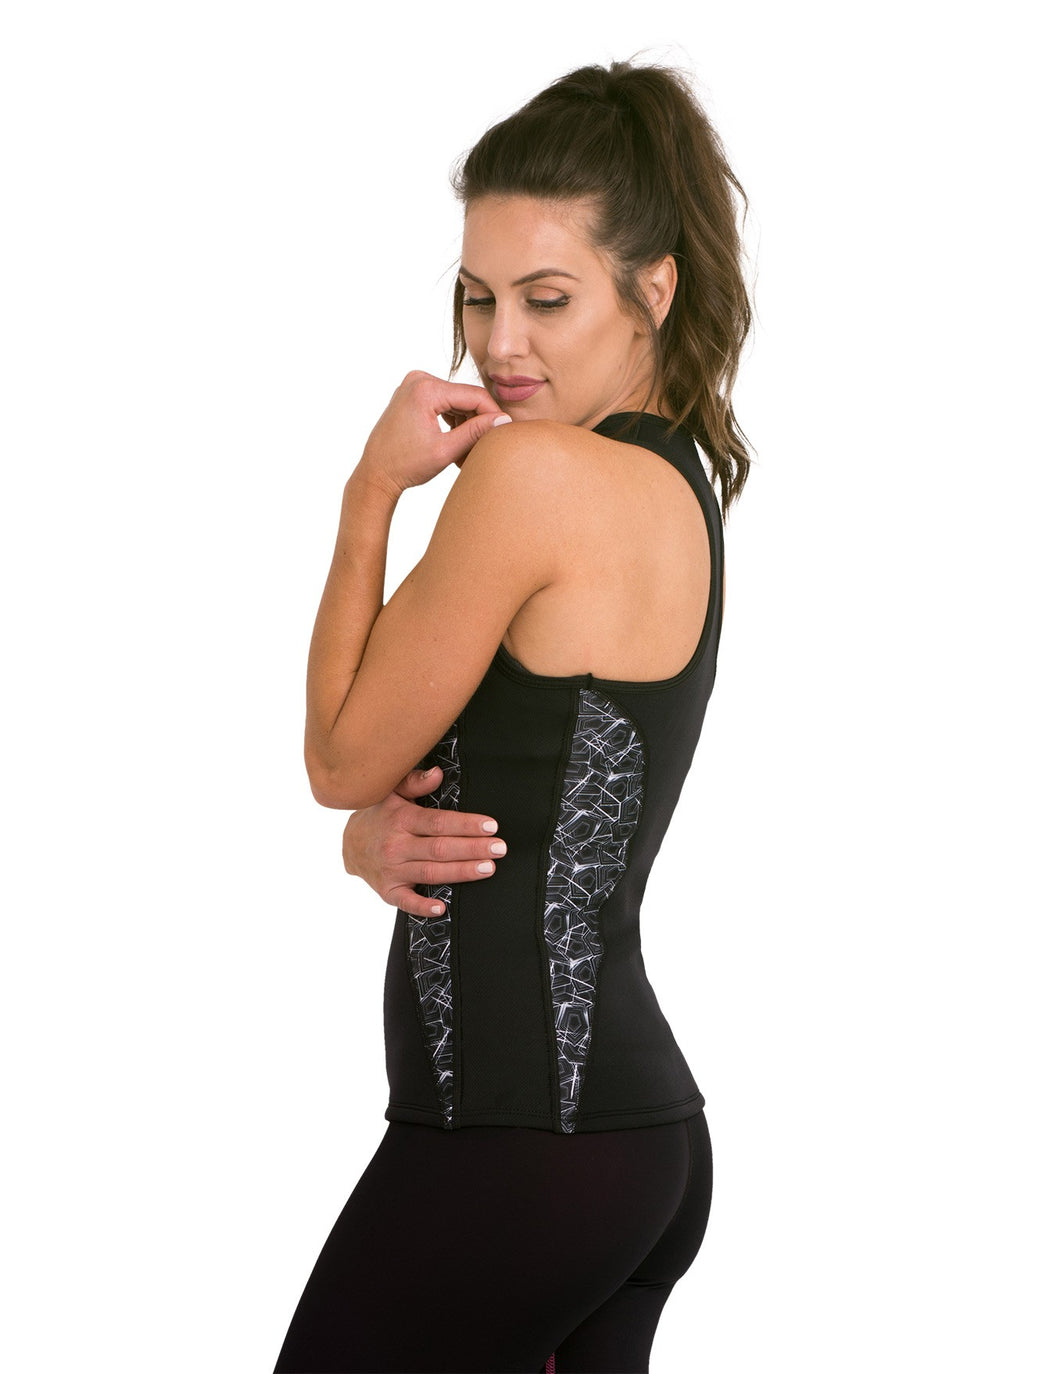 Heat Maximizing Full Coverage Racer-back Tank - Mystic Maze